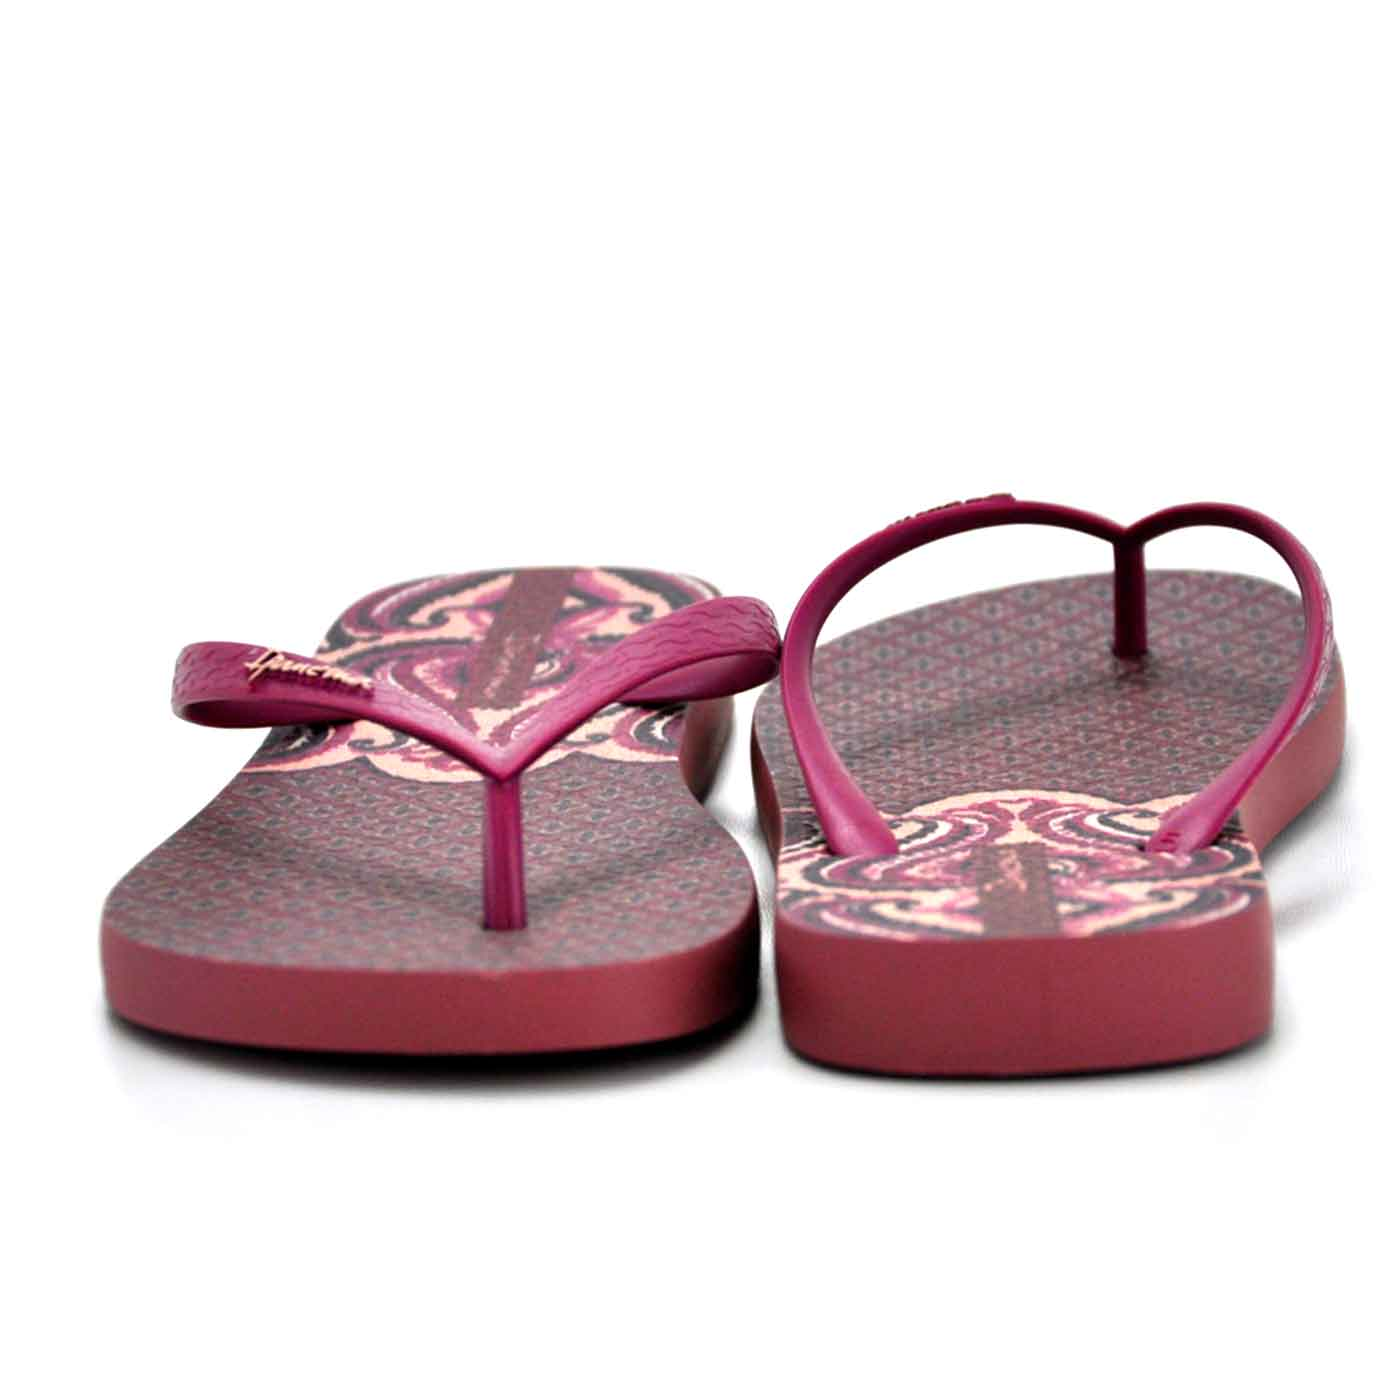 CHINELO IPANEMA TRENDY - 26026